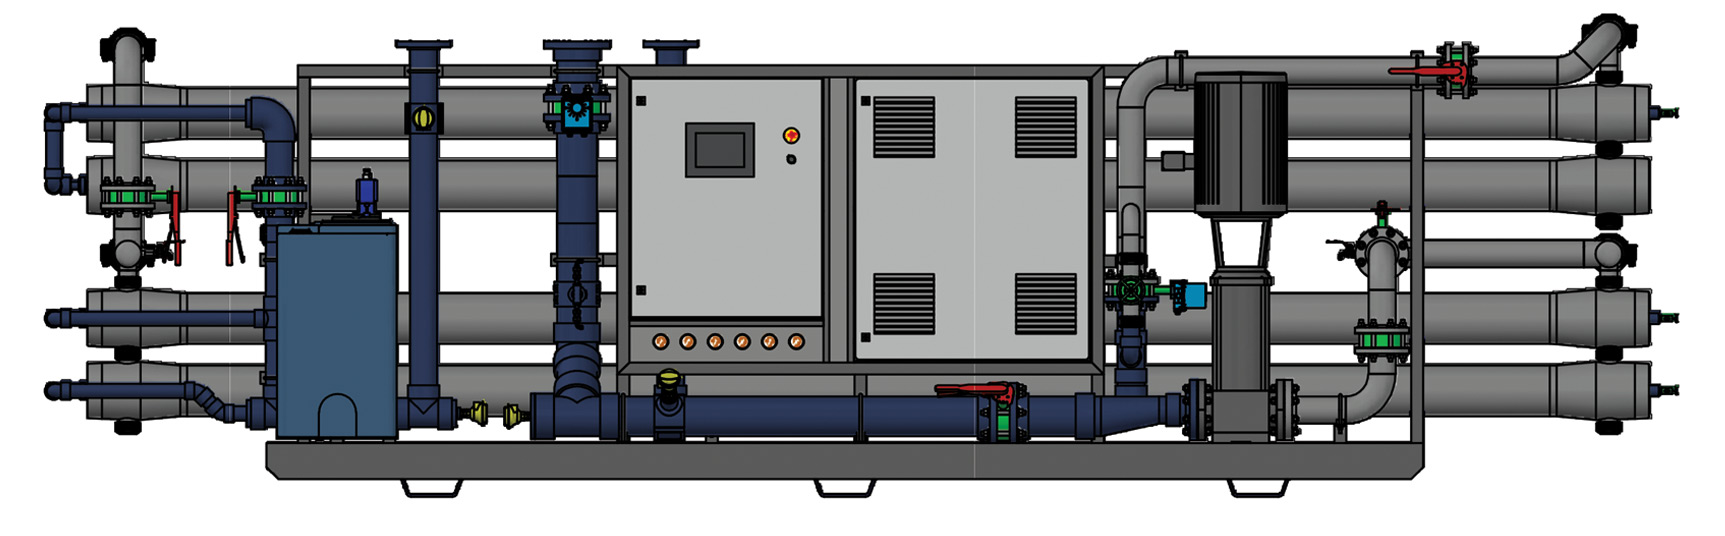 Pargreen Industrial Reverse Osmosis